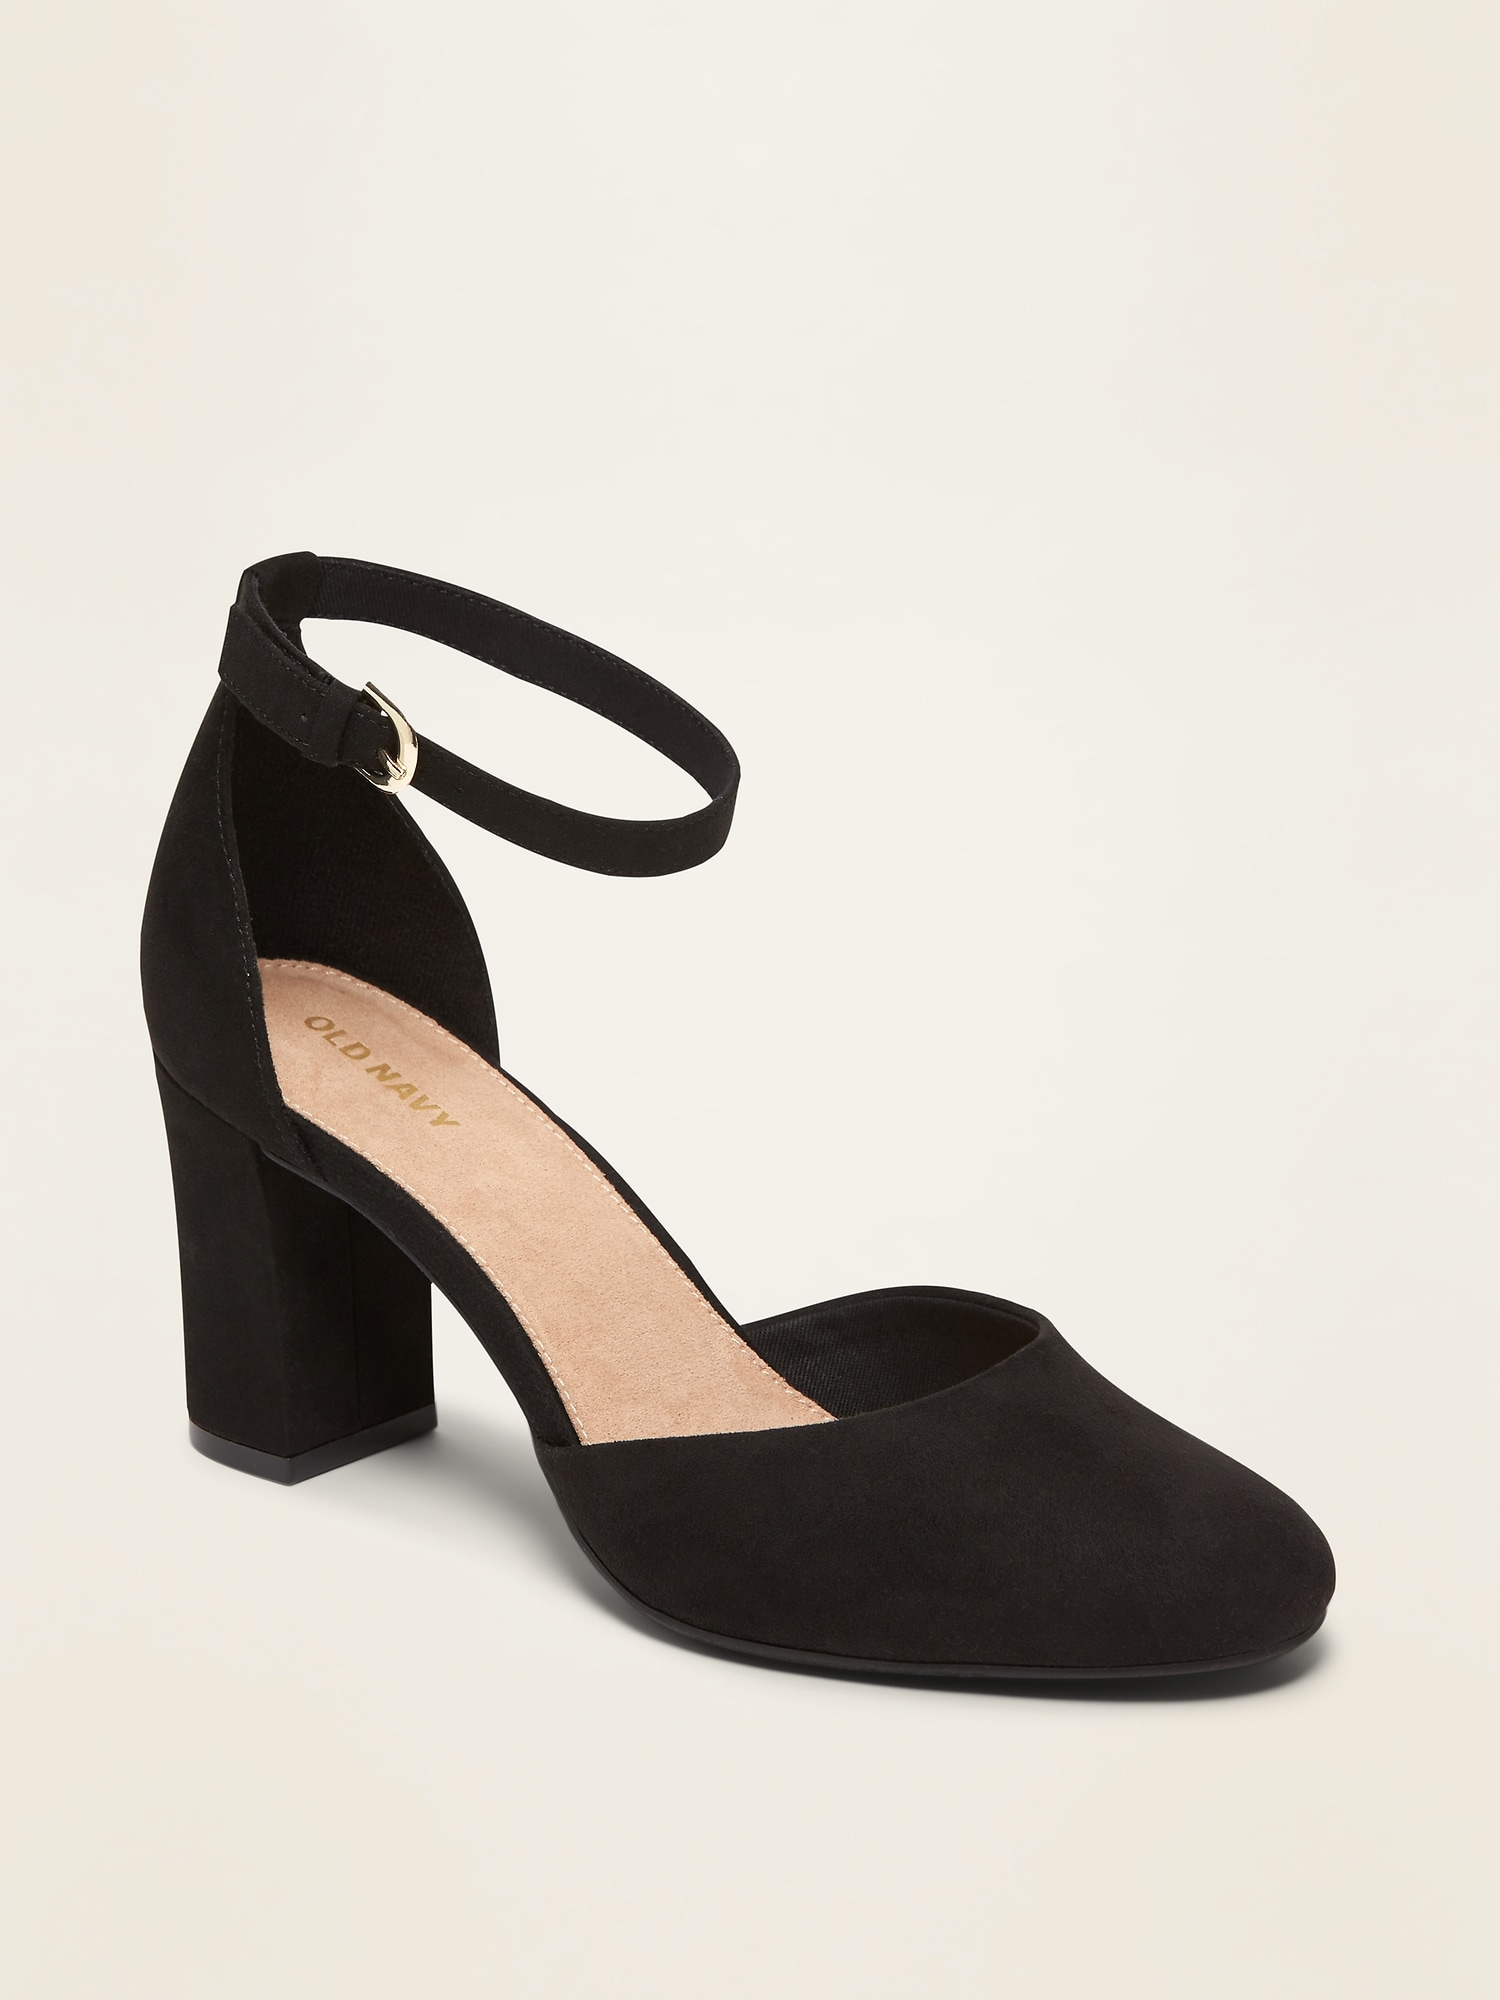 Faux Suede D'orsay Block Heel Pumps For Women by Old Navy